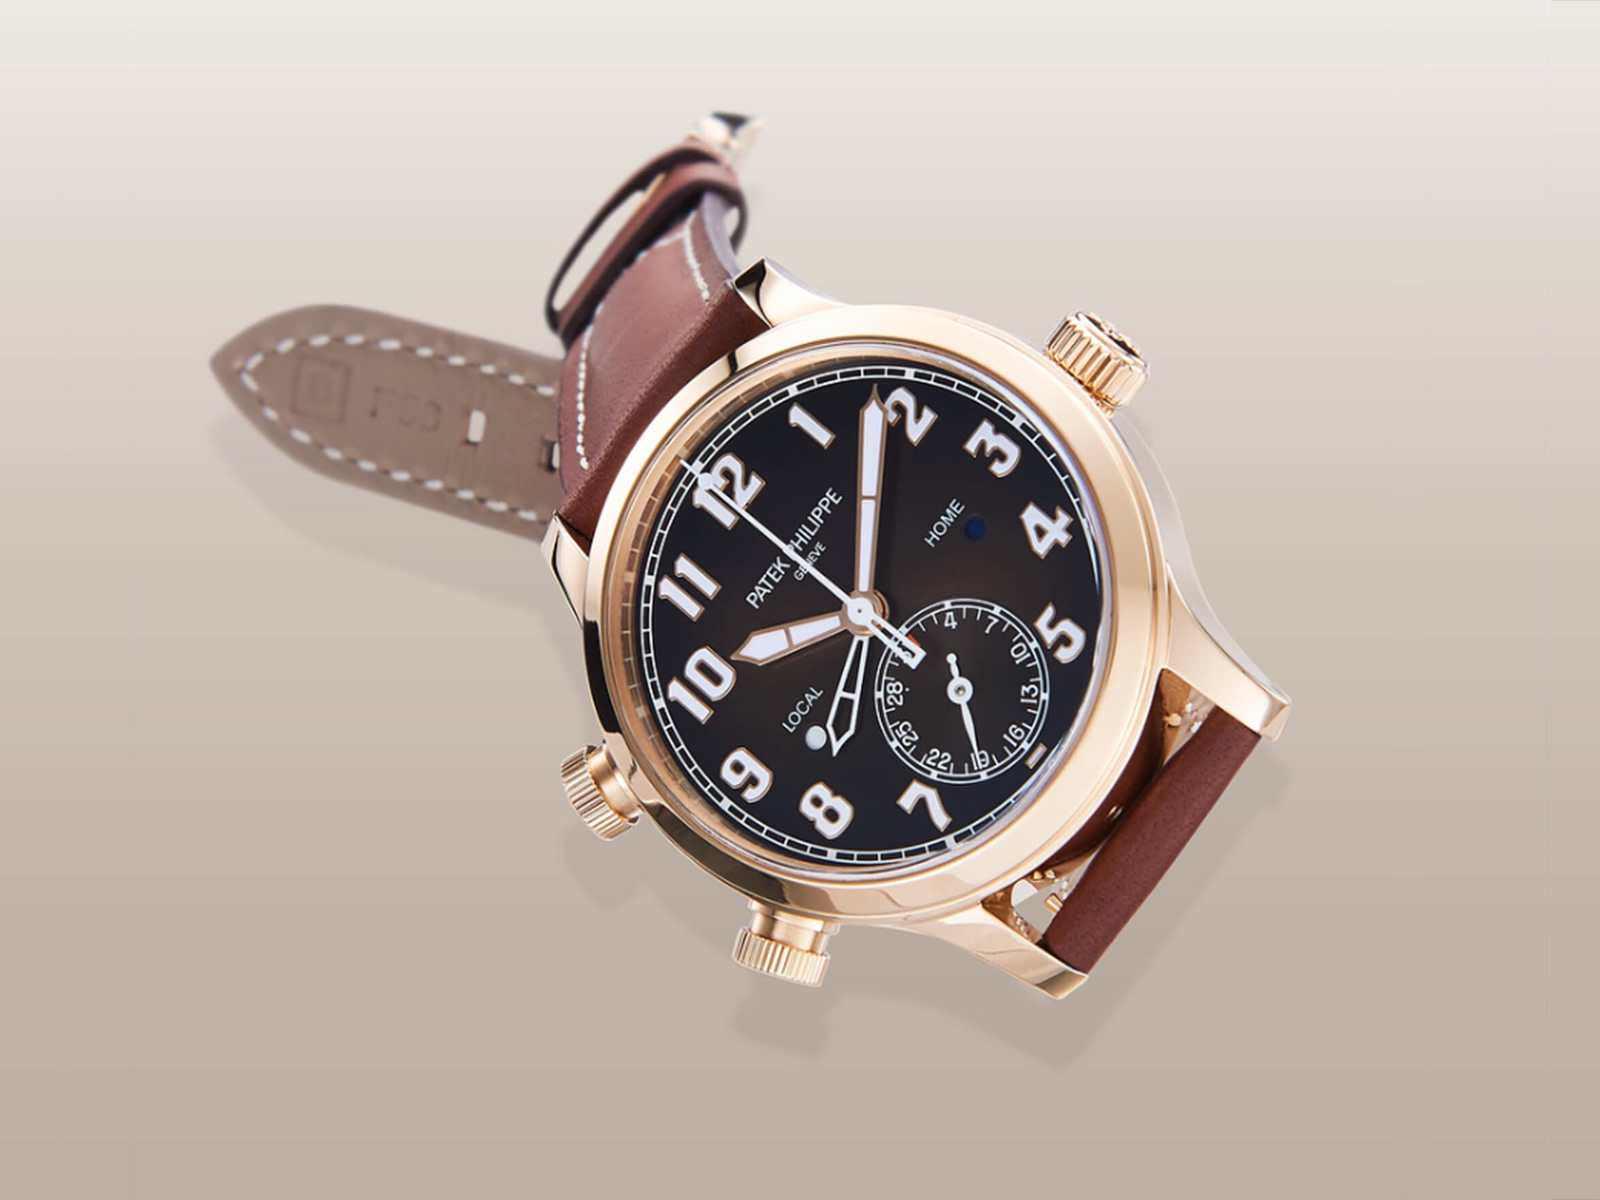 5524r-patek-philippe-calatrava-pilot-travel-time-1.jpg